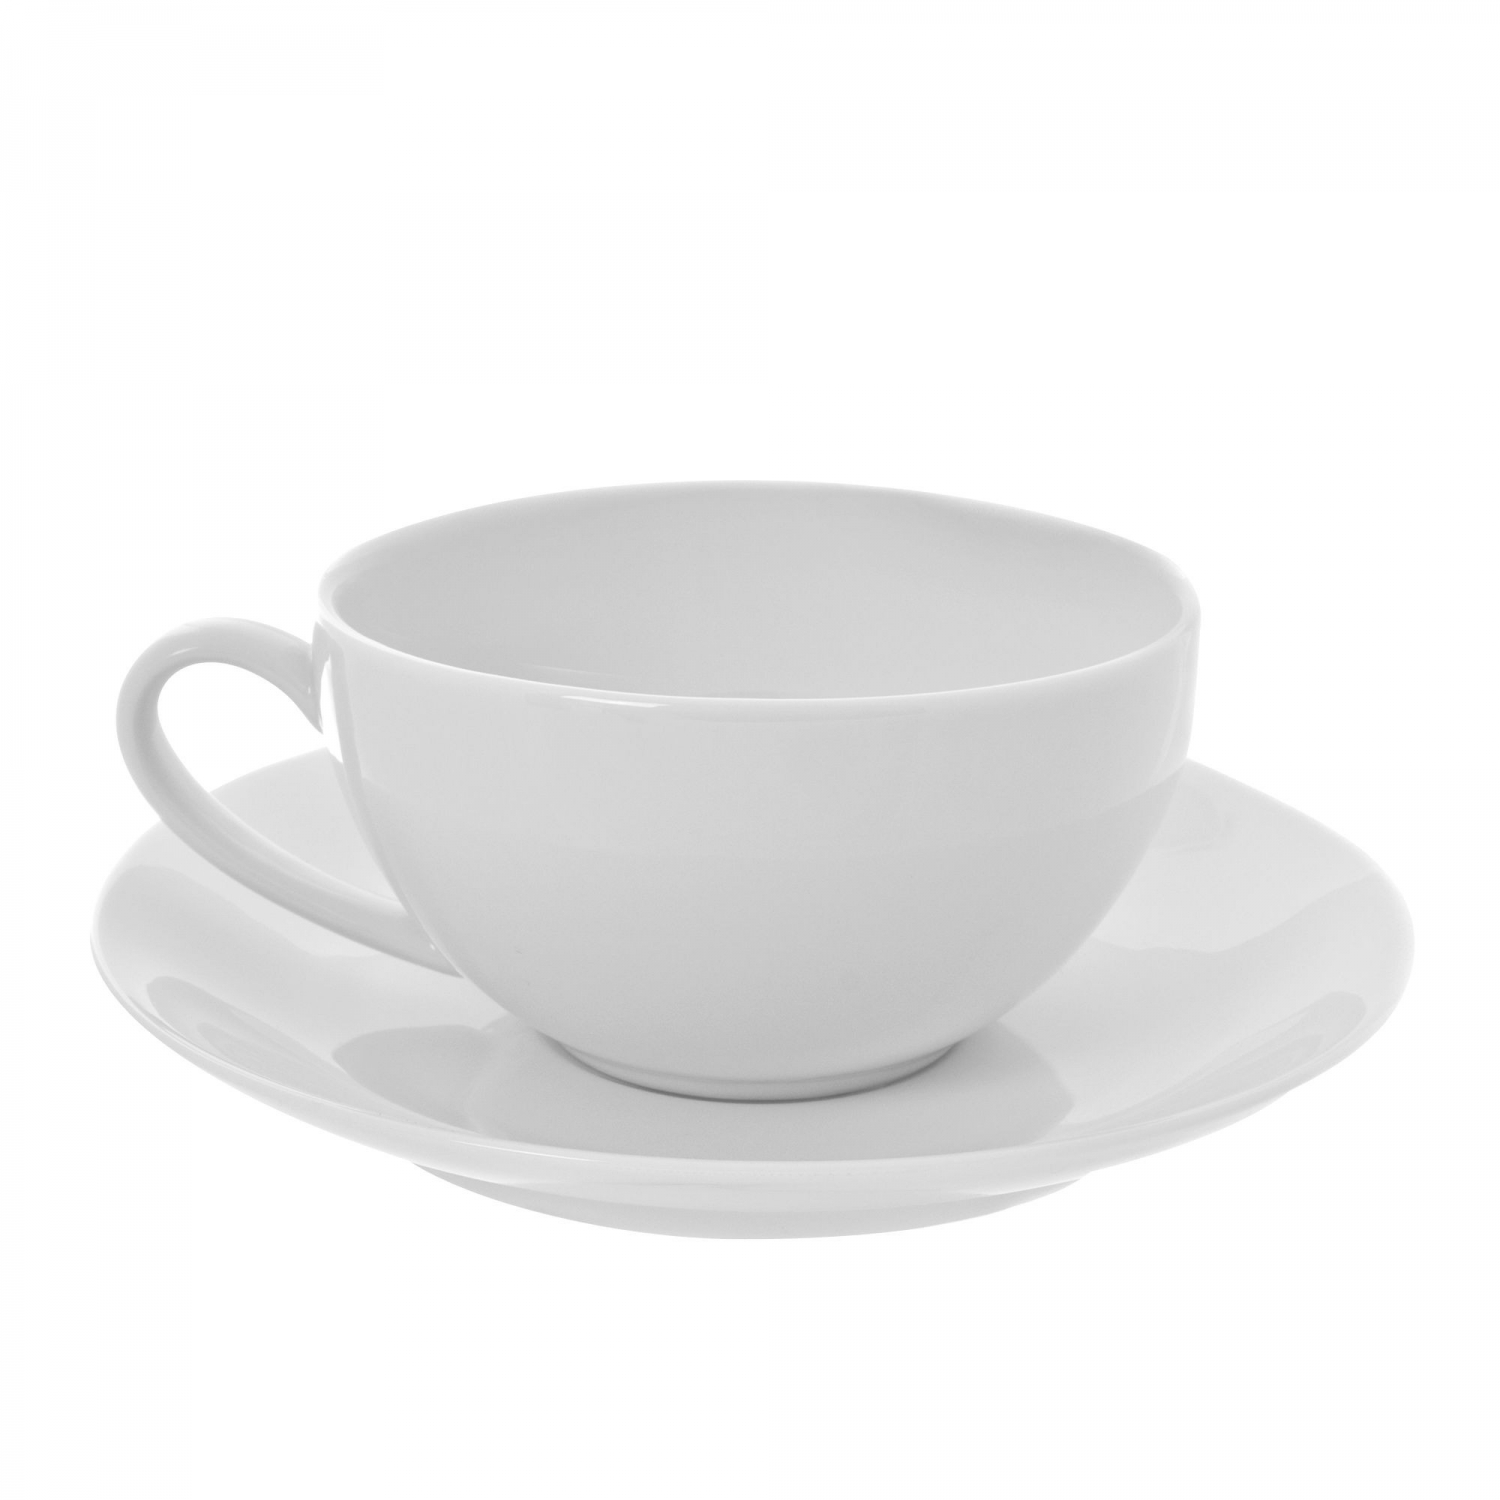 10 Strawberry Street RCP0009 Royal Coupe Cup and Saucer Set 10 oz.